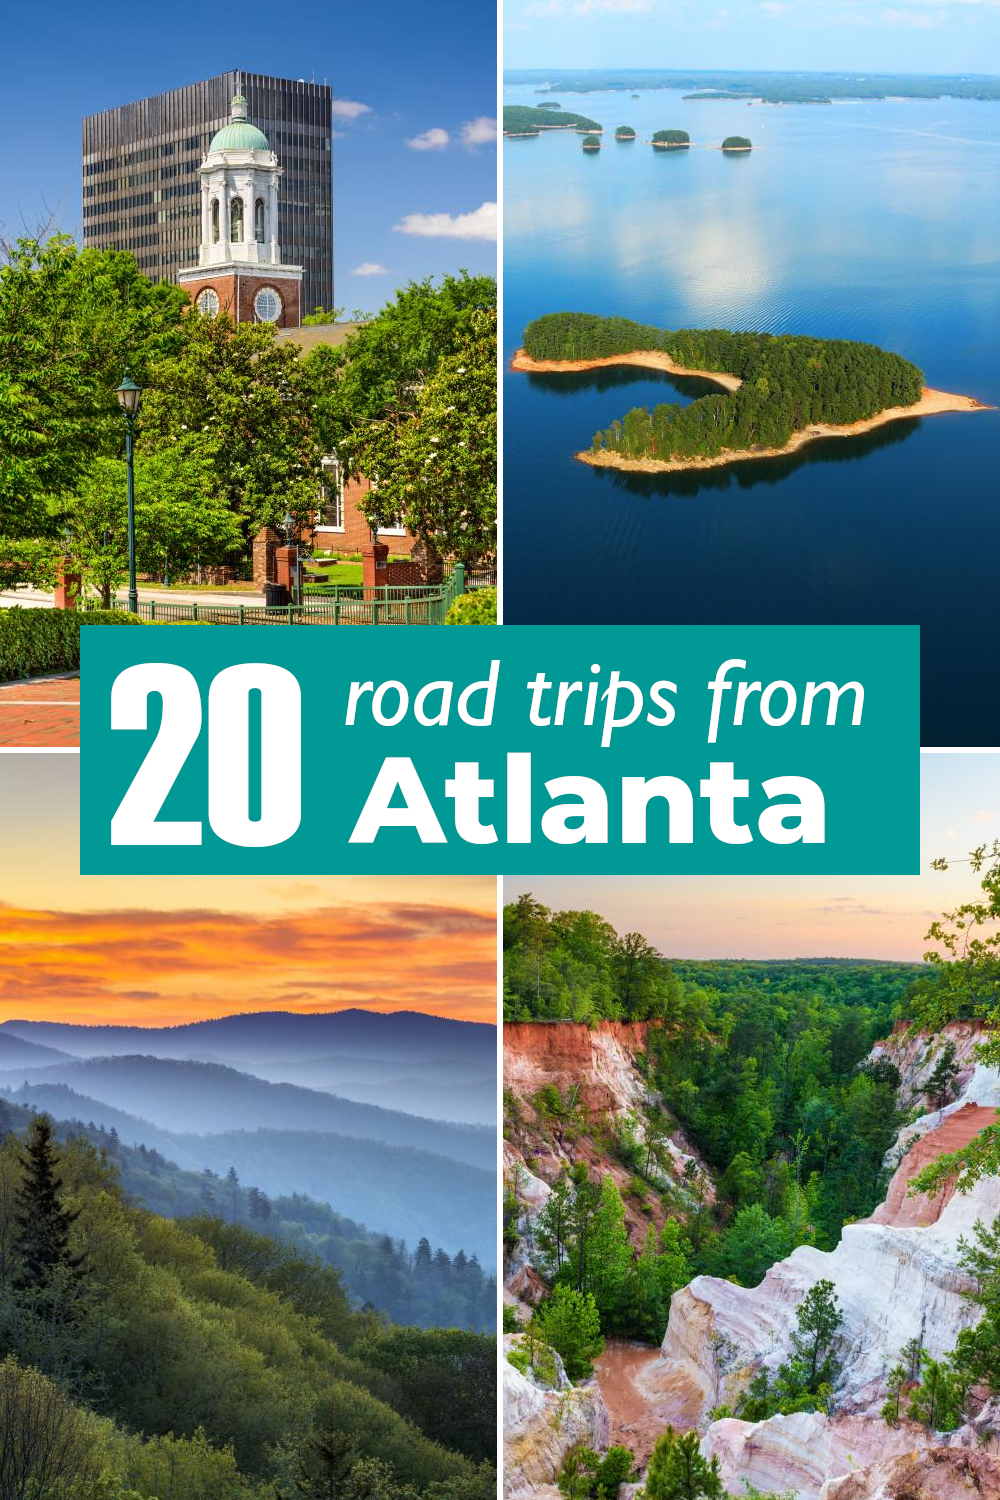 20 Best road trips from Atlanta - from short day drives to historic cities in Georgia to week-long adventures across the Deep South